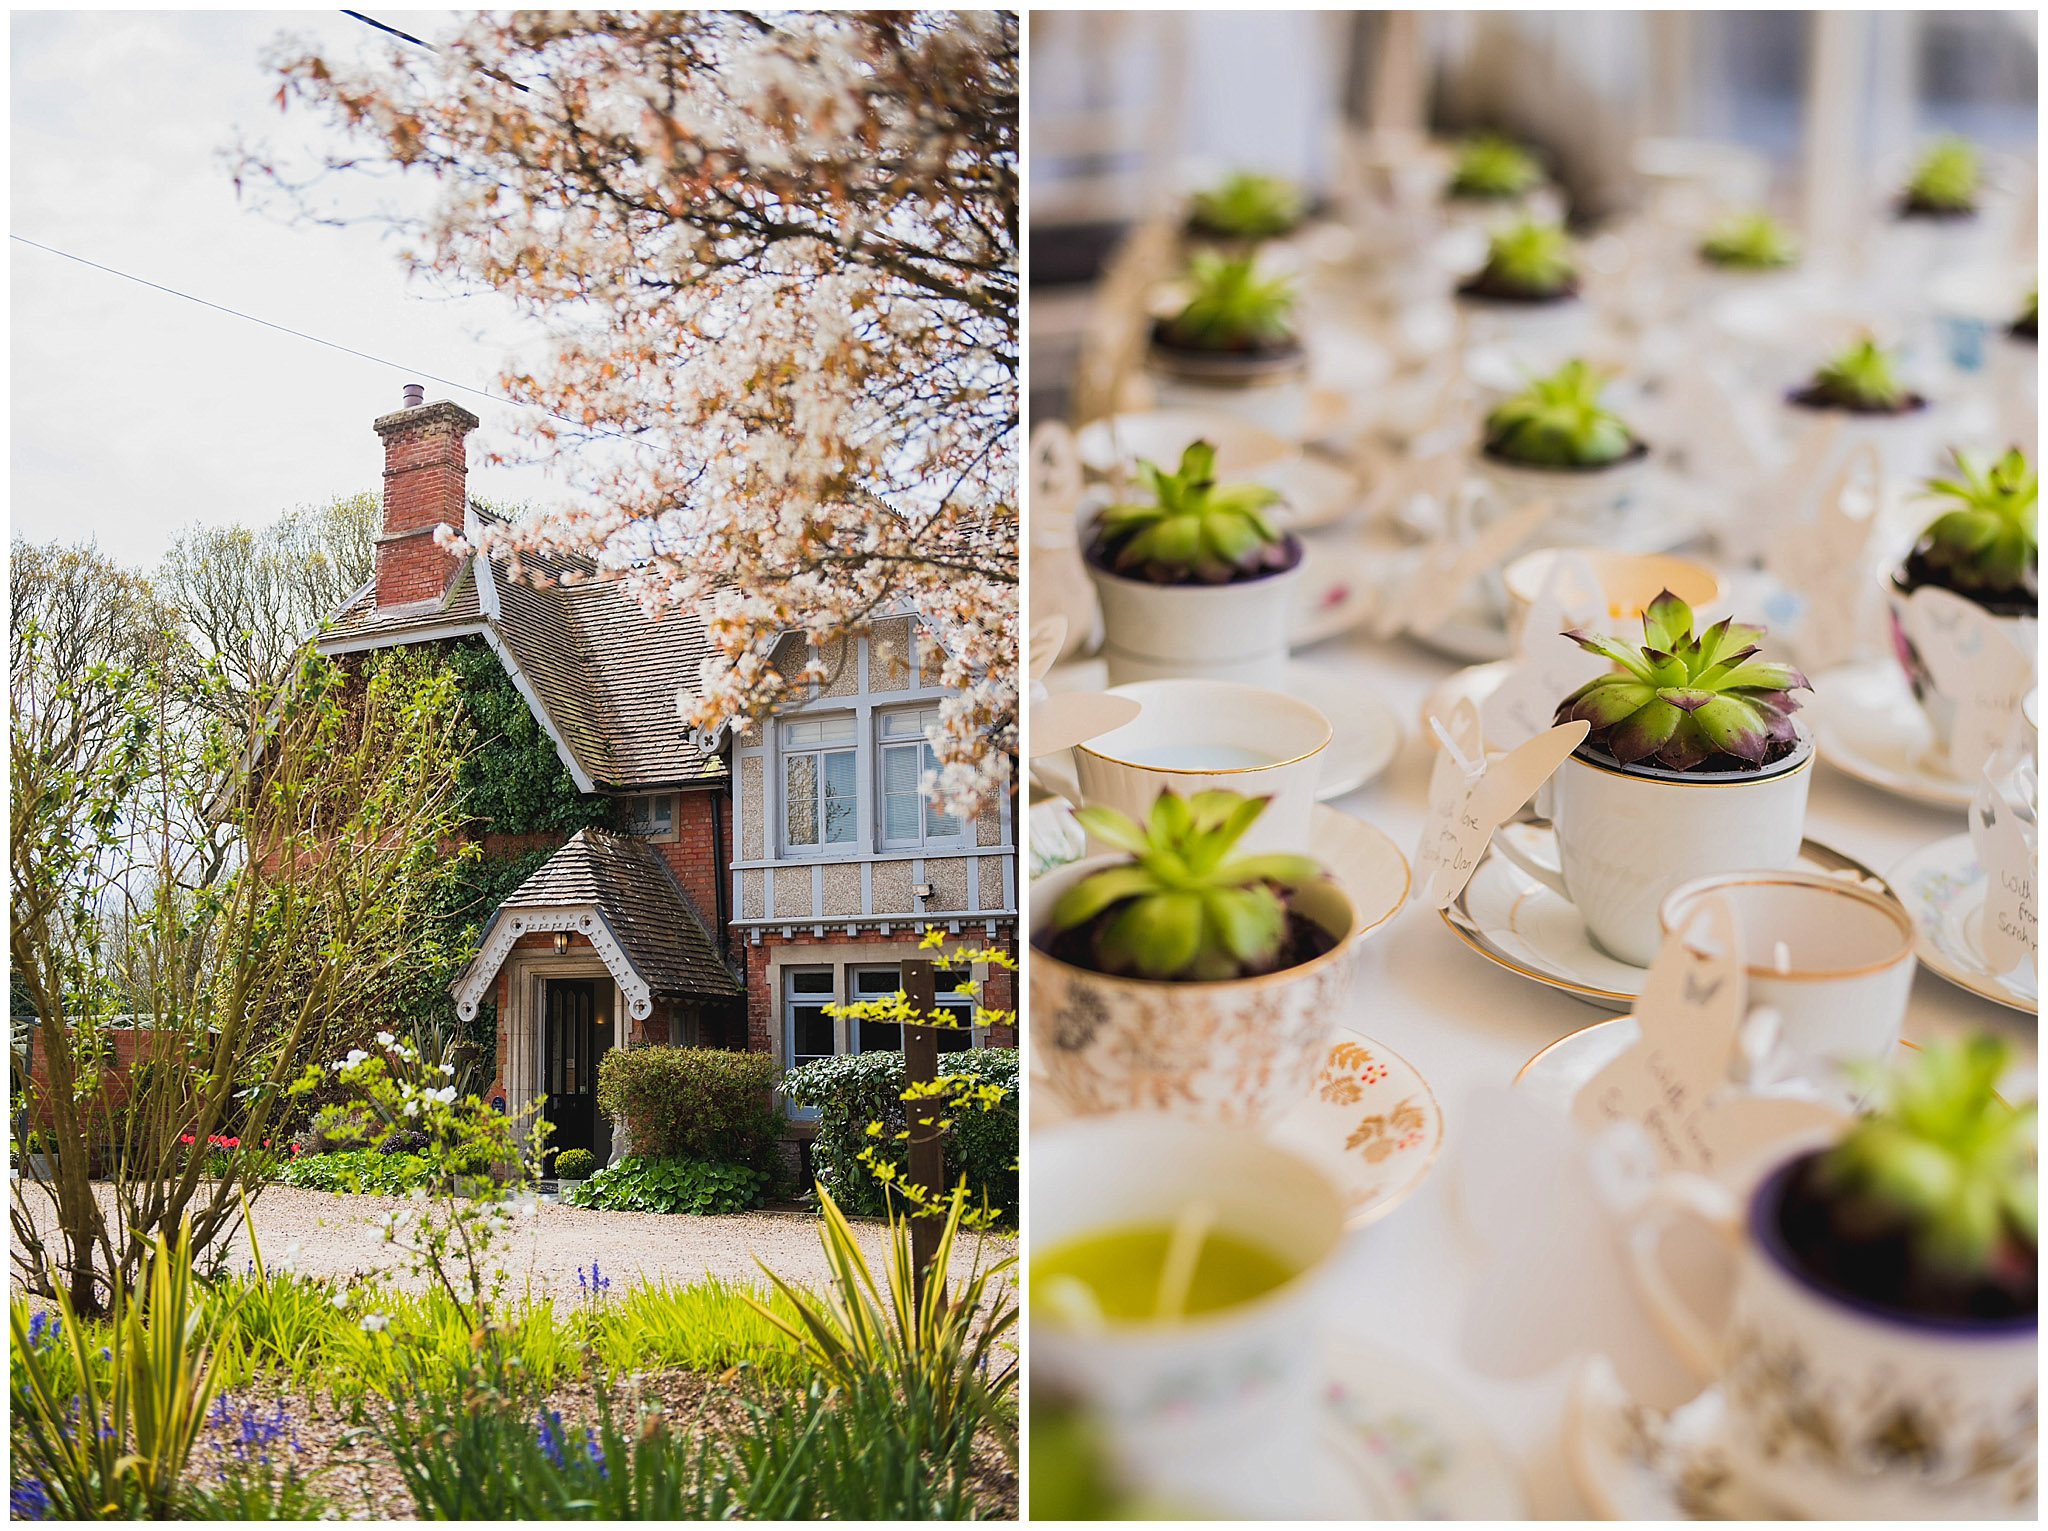 Sarah-&-Dan-The-Old-Vicarage-Wedding-Venue-Dorset-Photographer-2